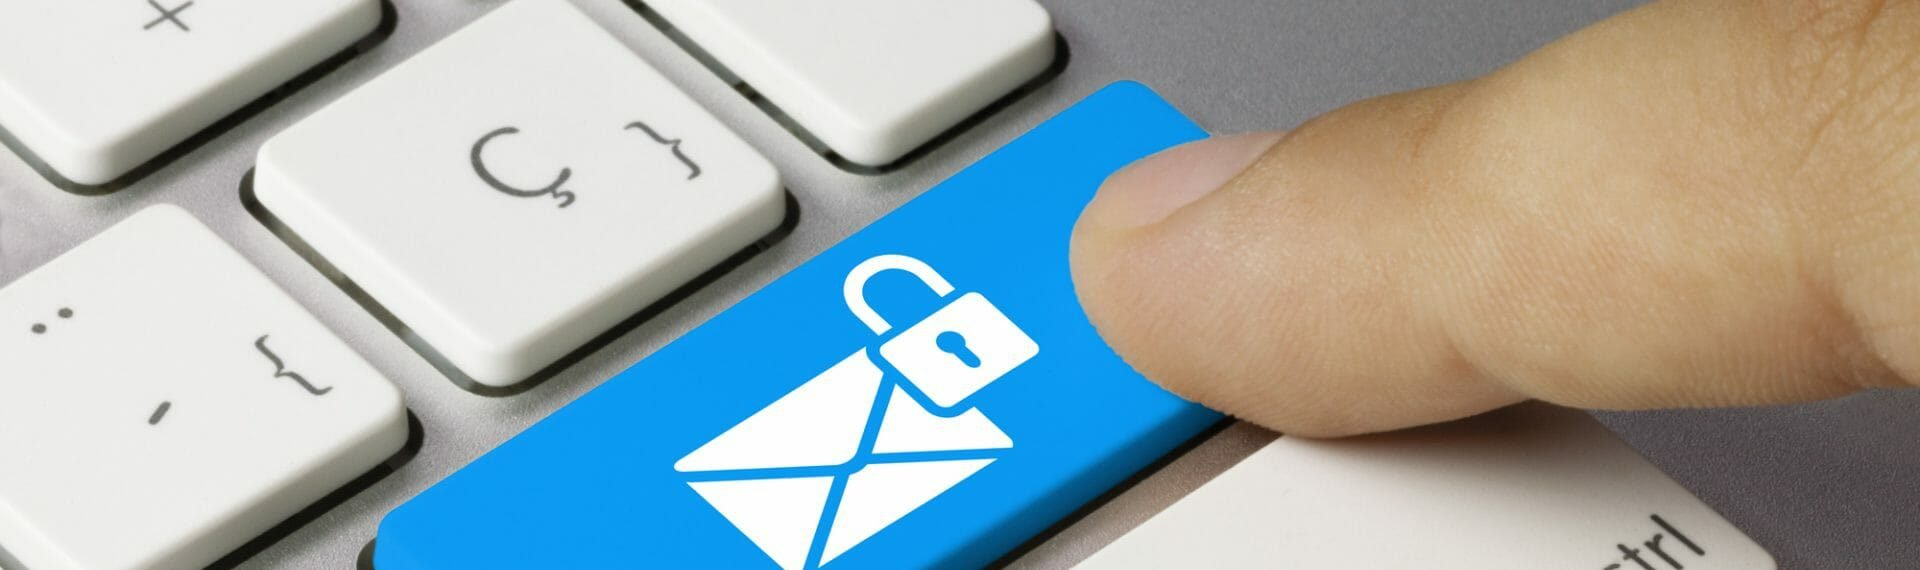 Scammed Again: The Latest Email Scam That Targets Tradesmen